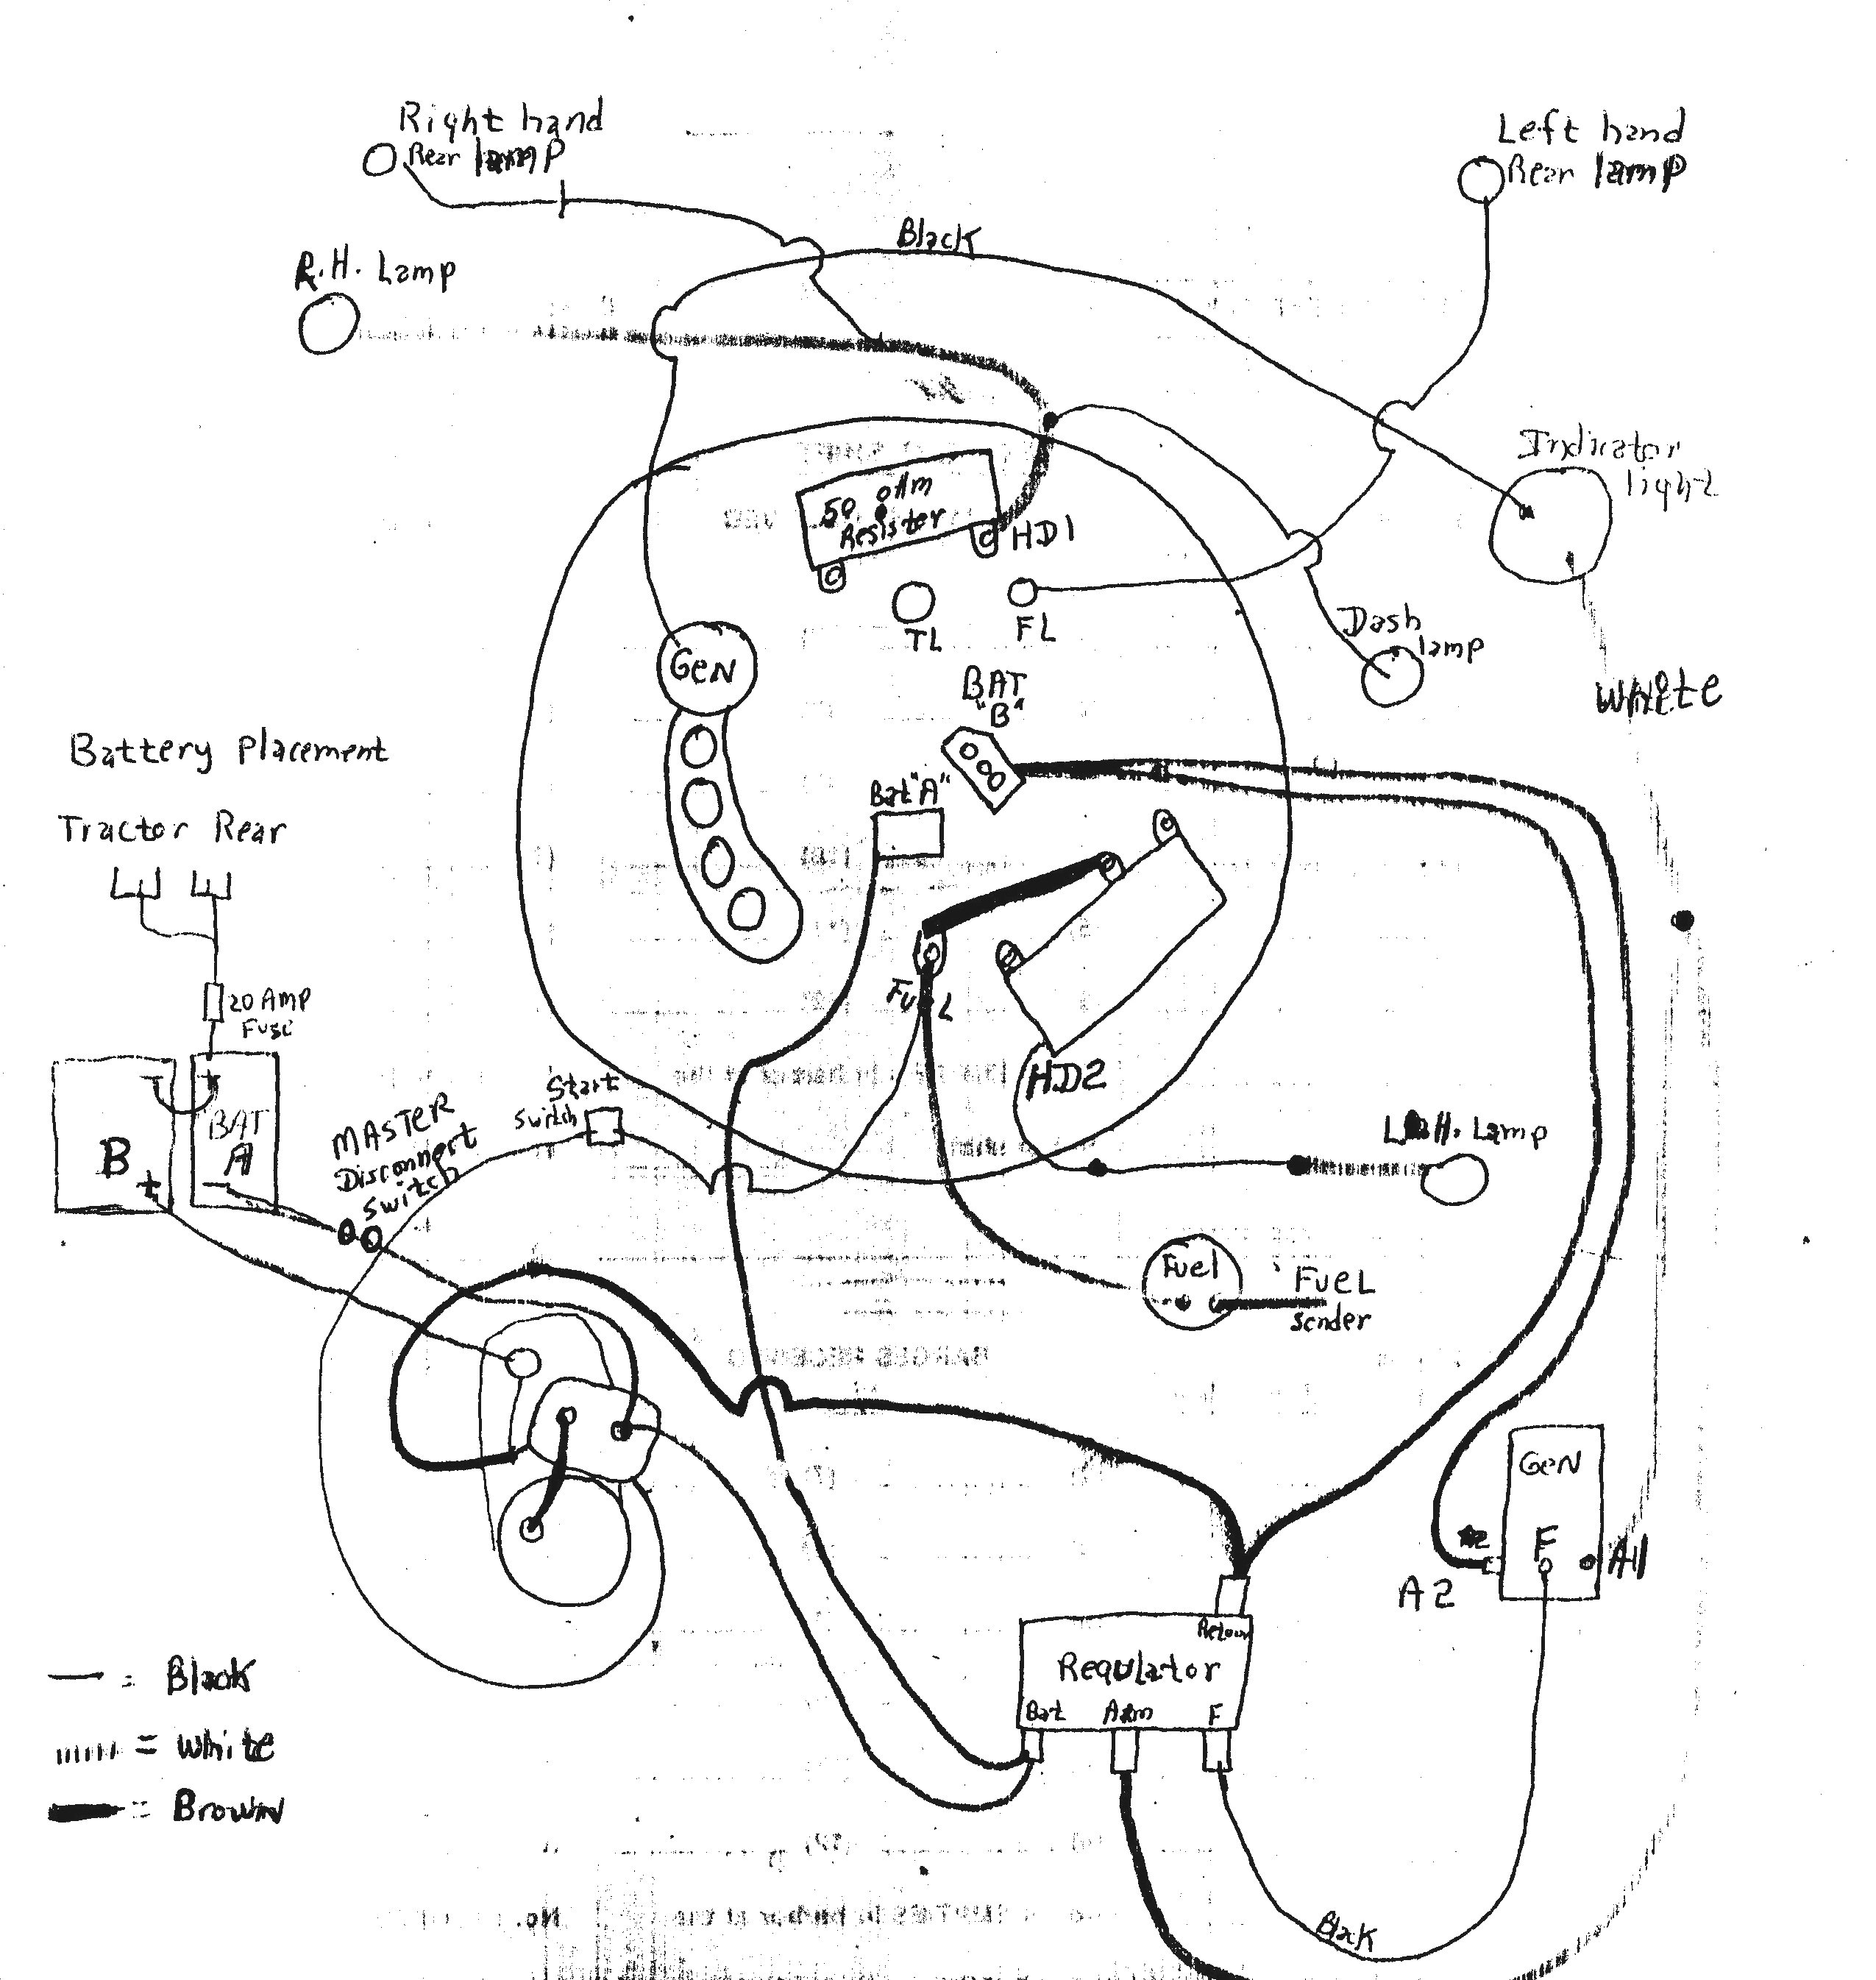 24volt_wiring_diagram the john deere 24 volt electrical system explained john deere 4020 wiring harness at bayanpartner.co